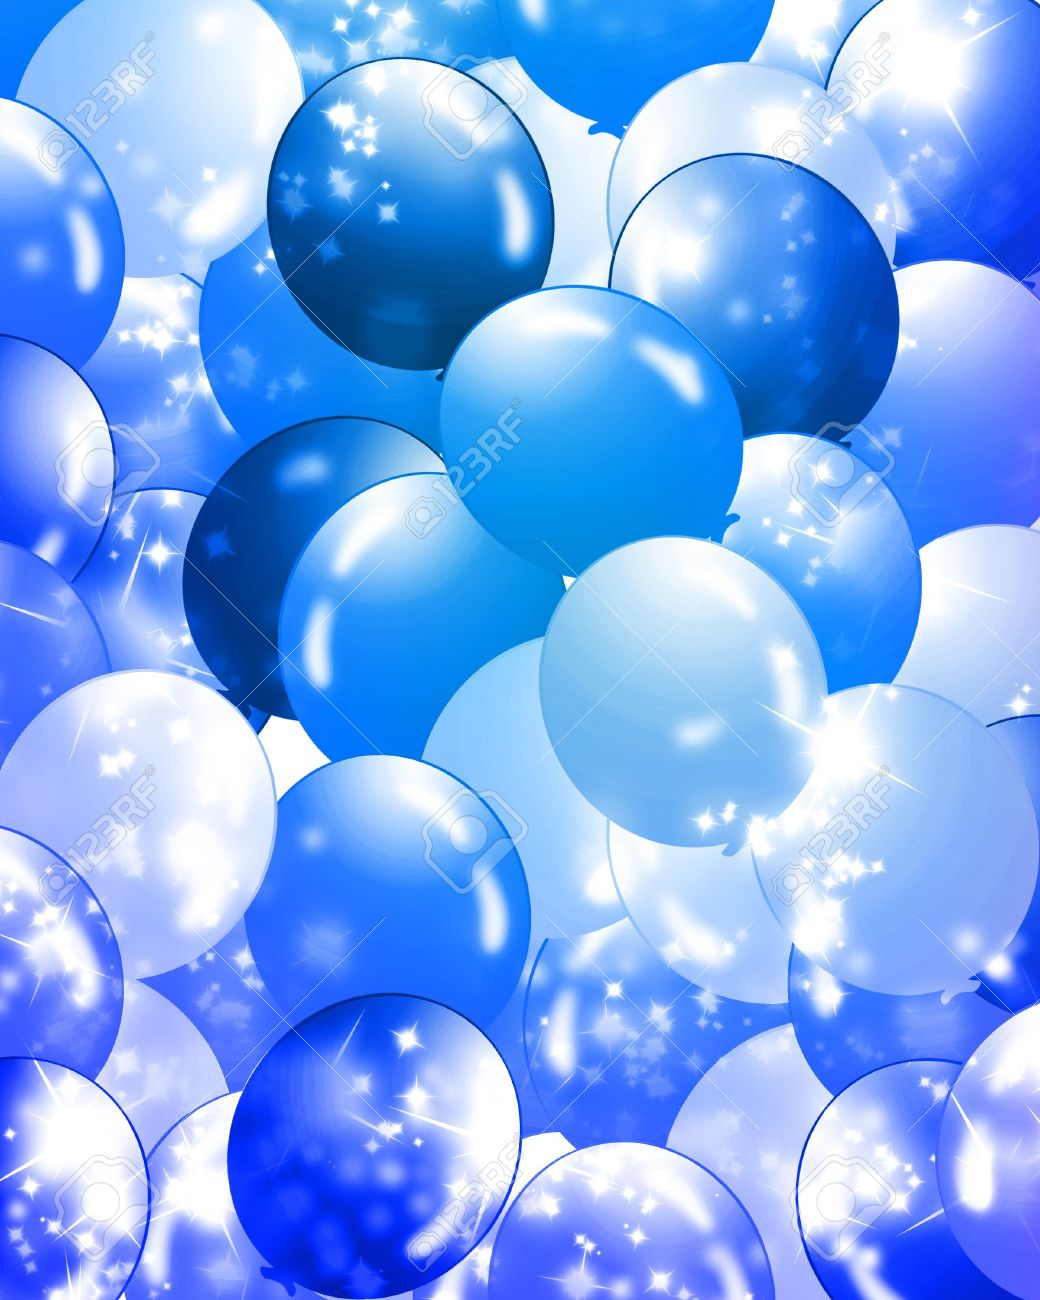 Balloons In Different Shades Of Blue Filling The Background Stock ...